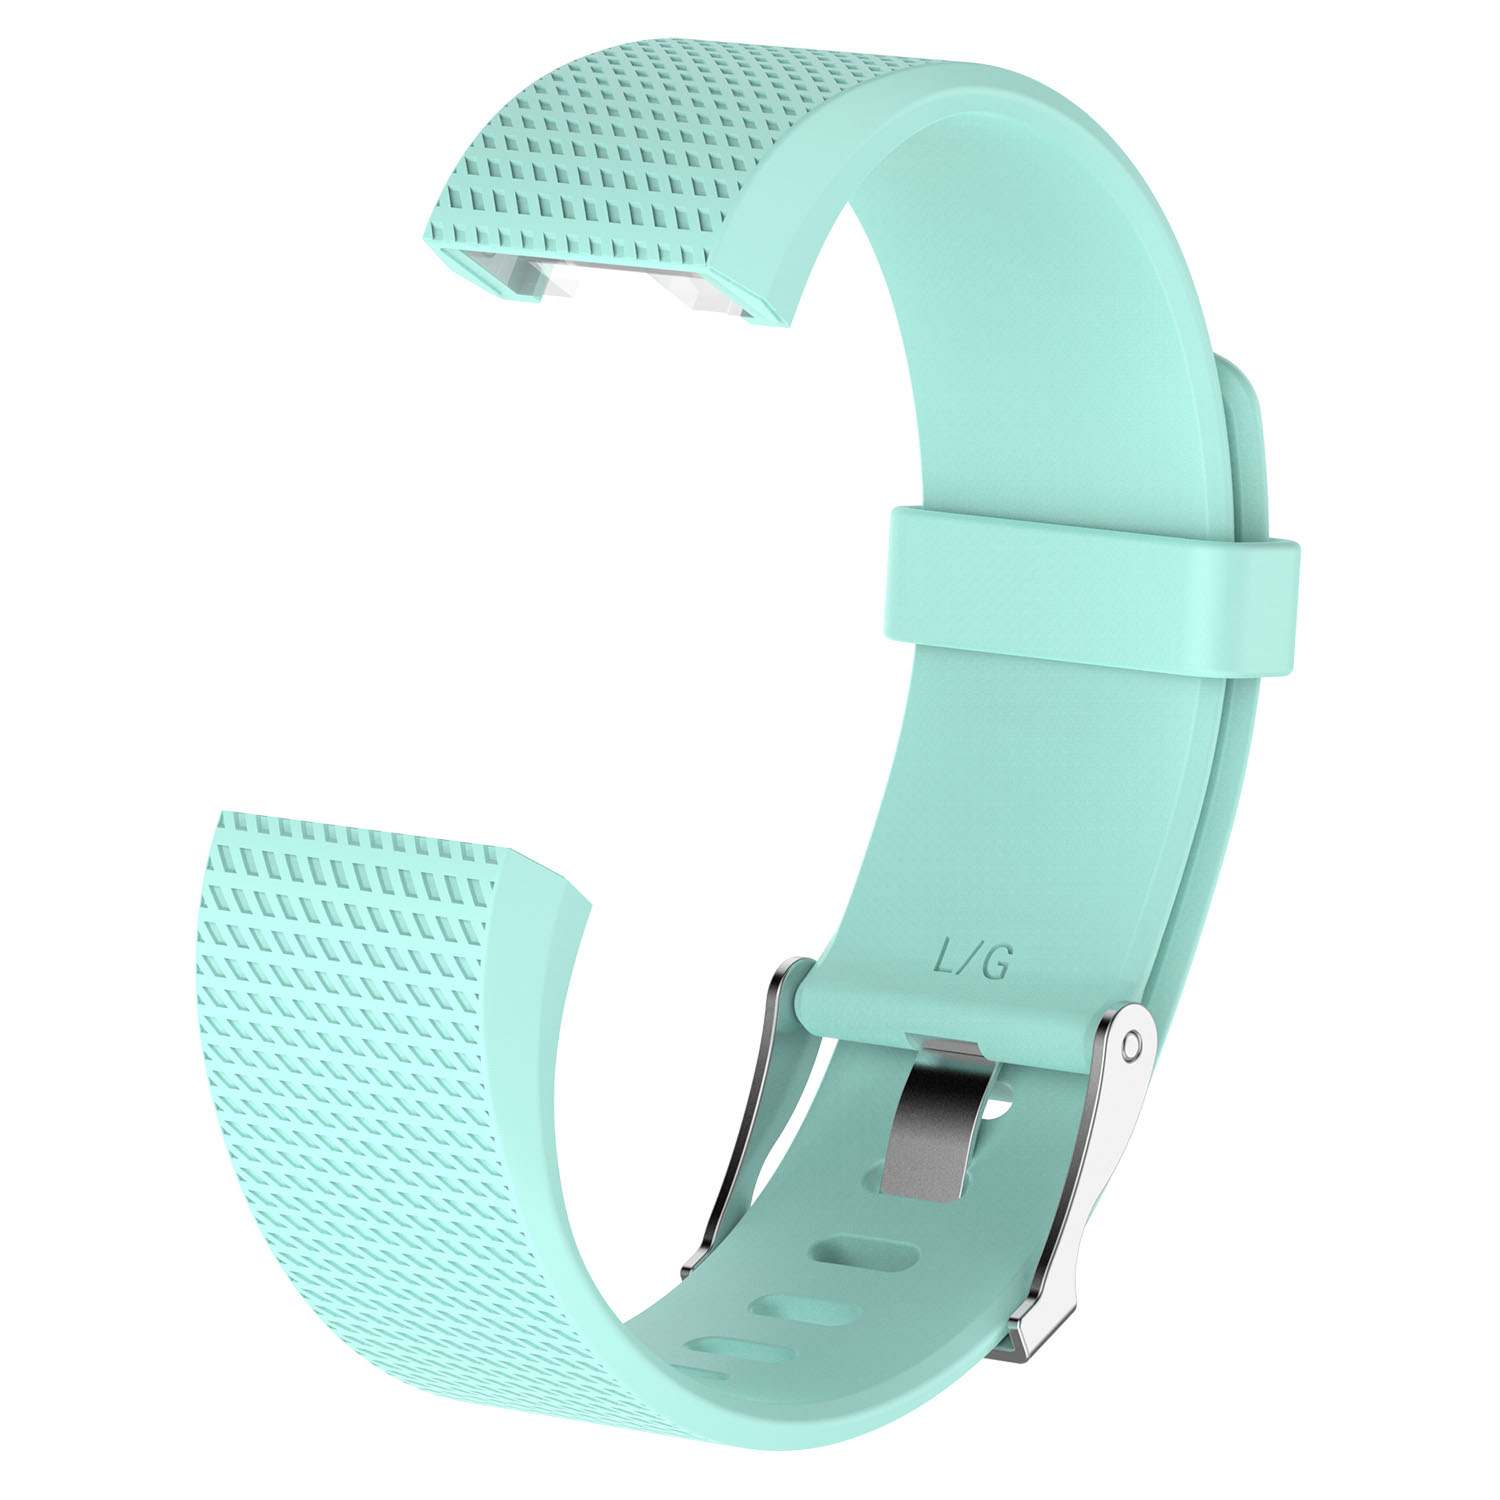 Replacement-Silicone-Wristband-Watch-Strap-Bands-Bracelet-For-Fitbit-Charge-2 thumbnail 33